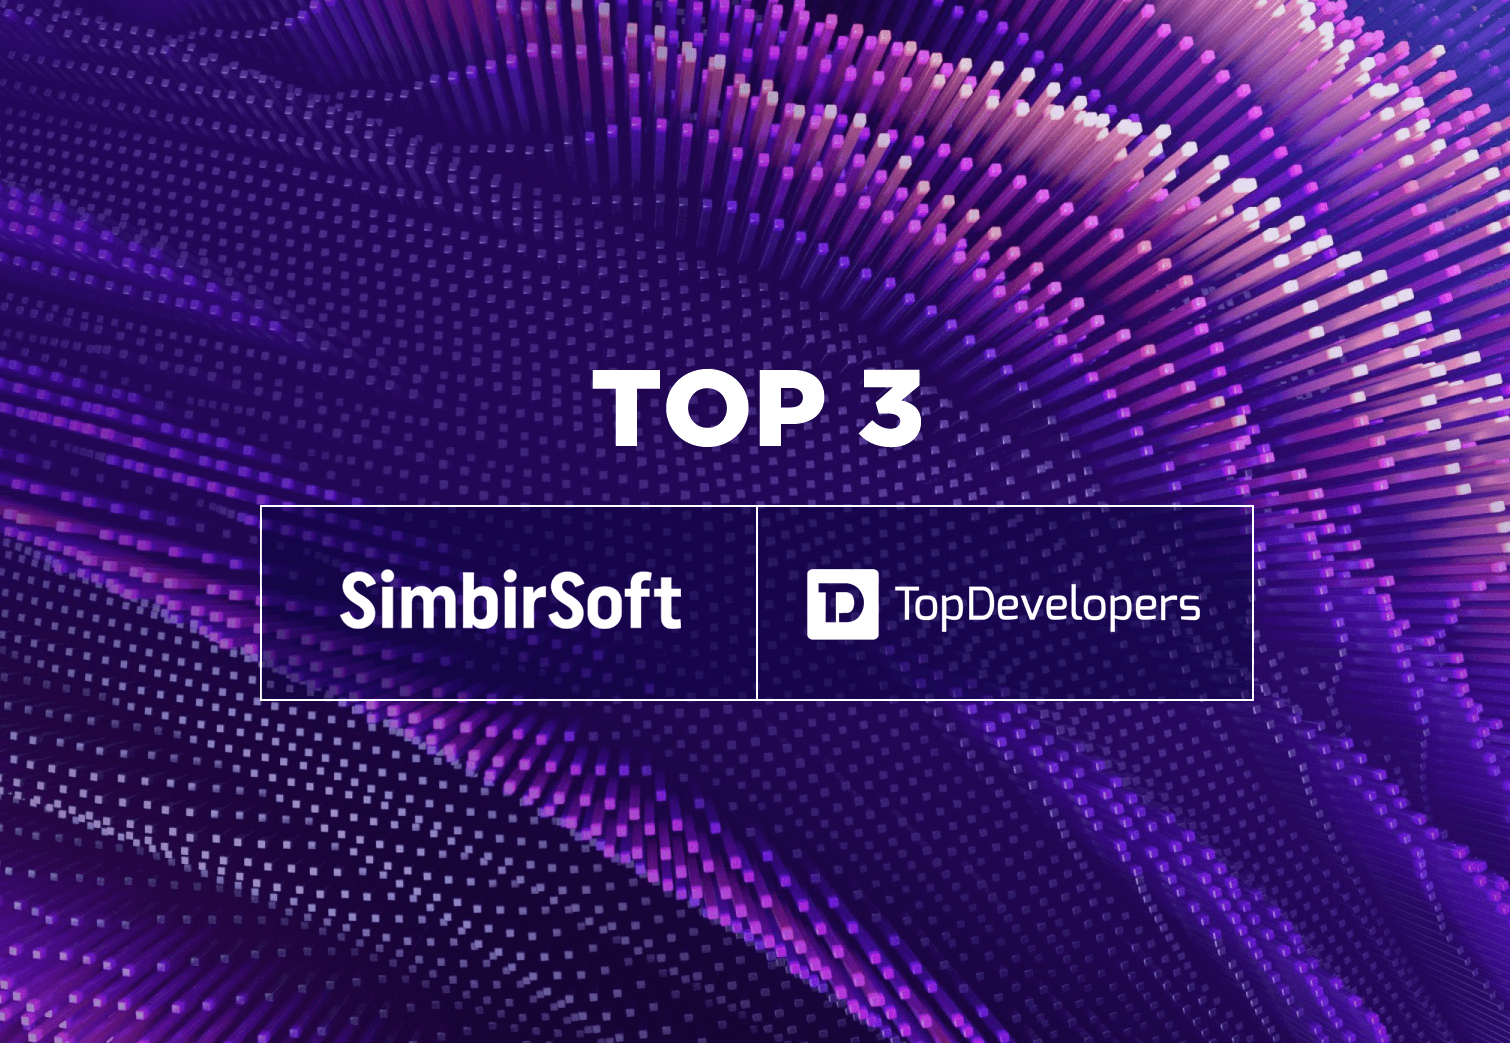 SimbirSoft Has Been Identified as a Top Web and Software Developer by TopDevelopers.co